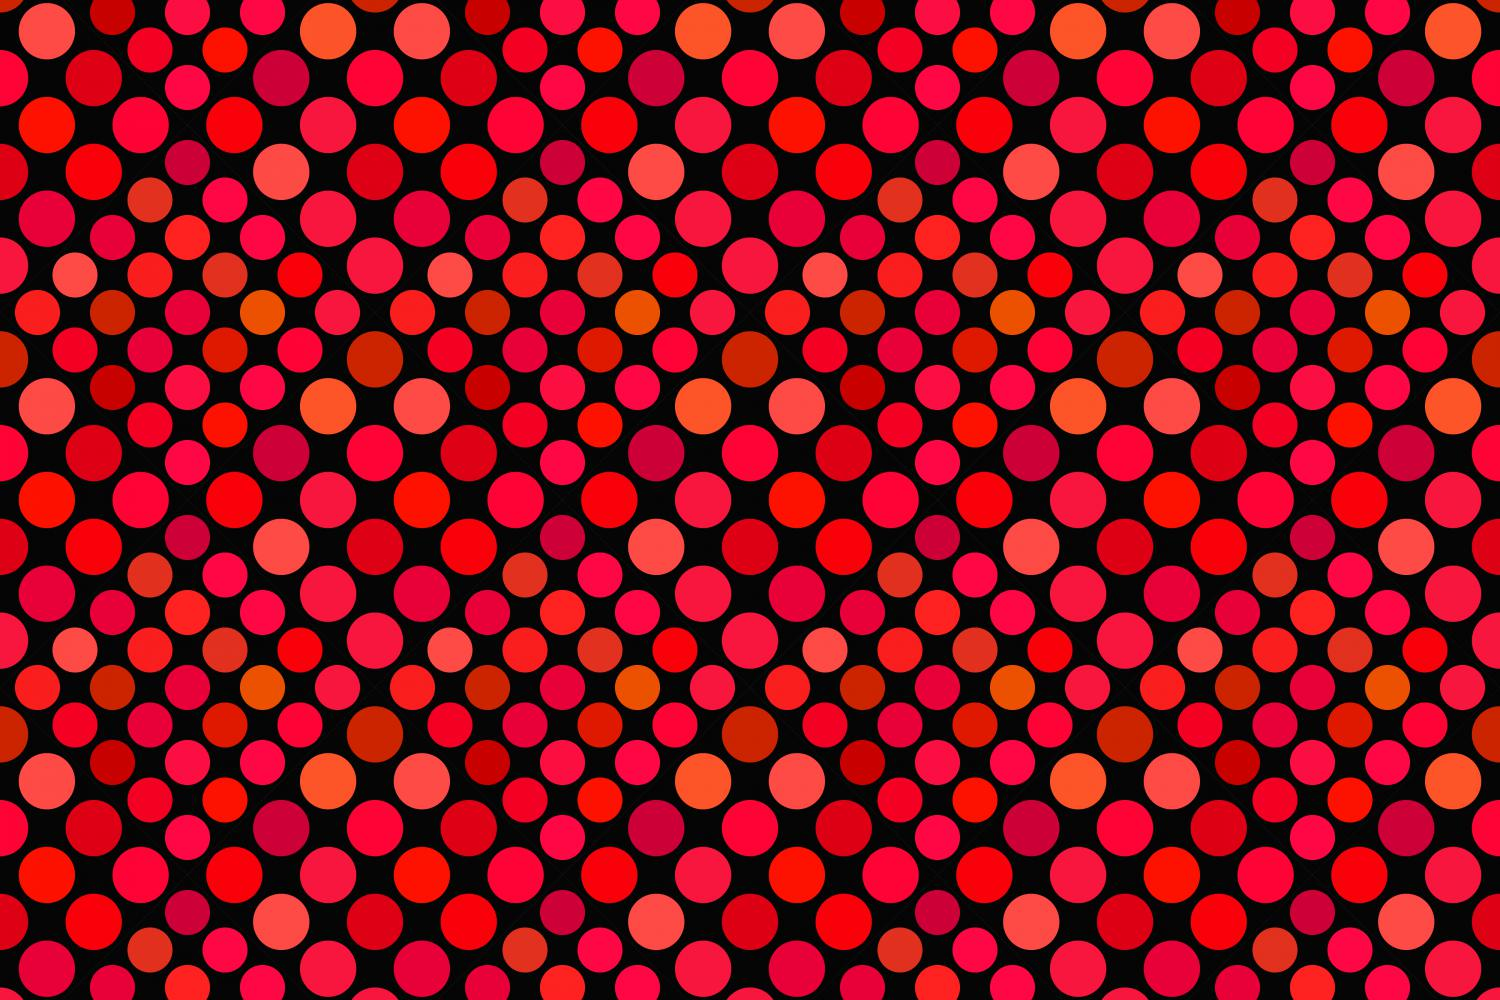 24 Seamless Red Dot Patterns example image 11